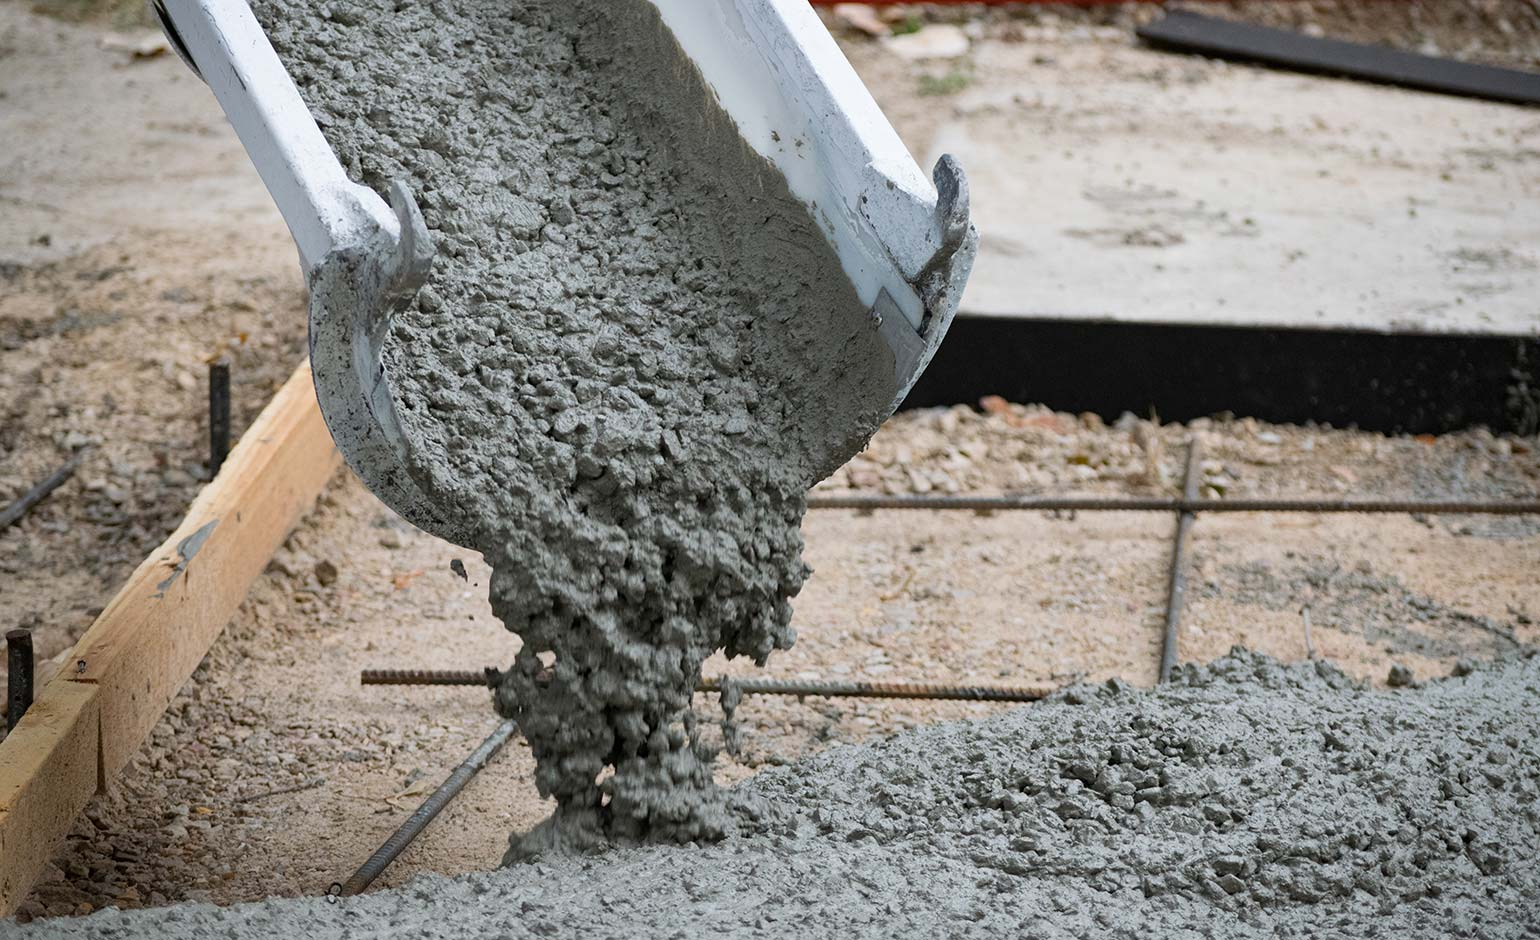 Cement manufacturer set to extend operating hours despite complaints